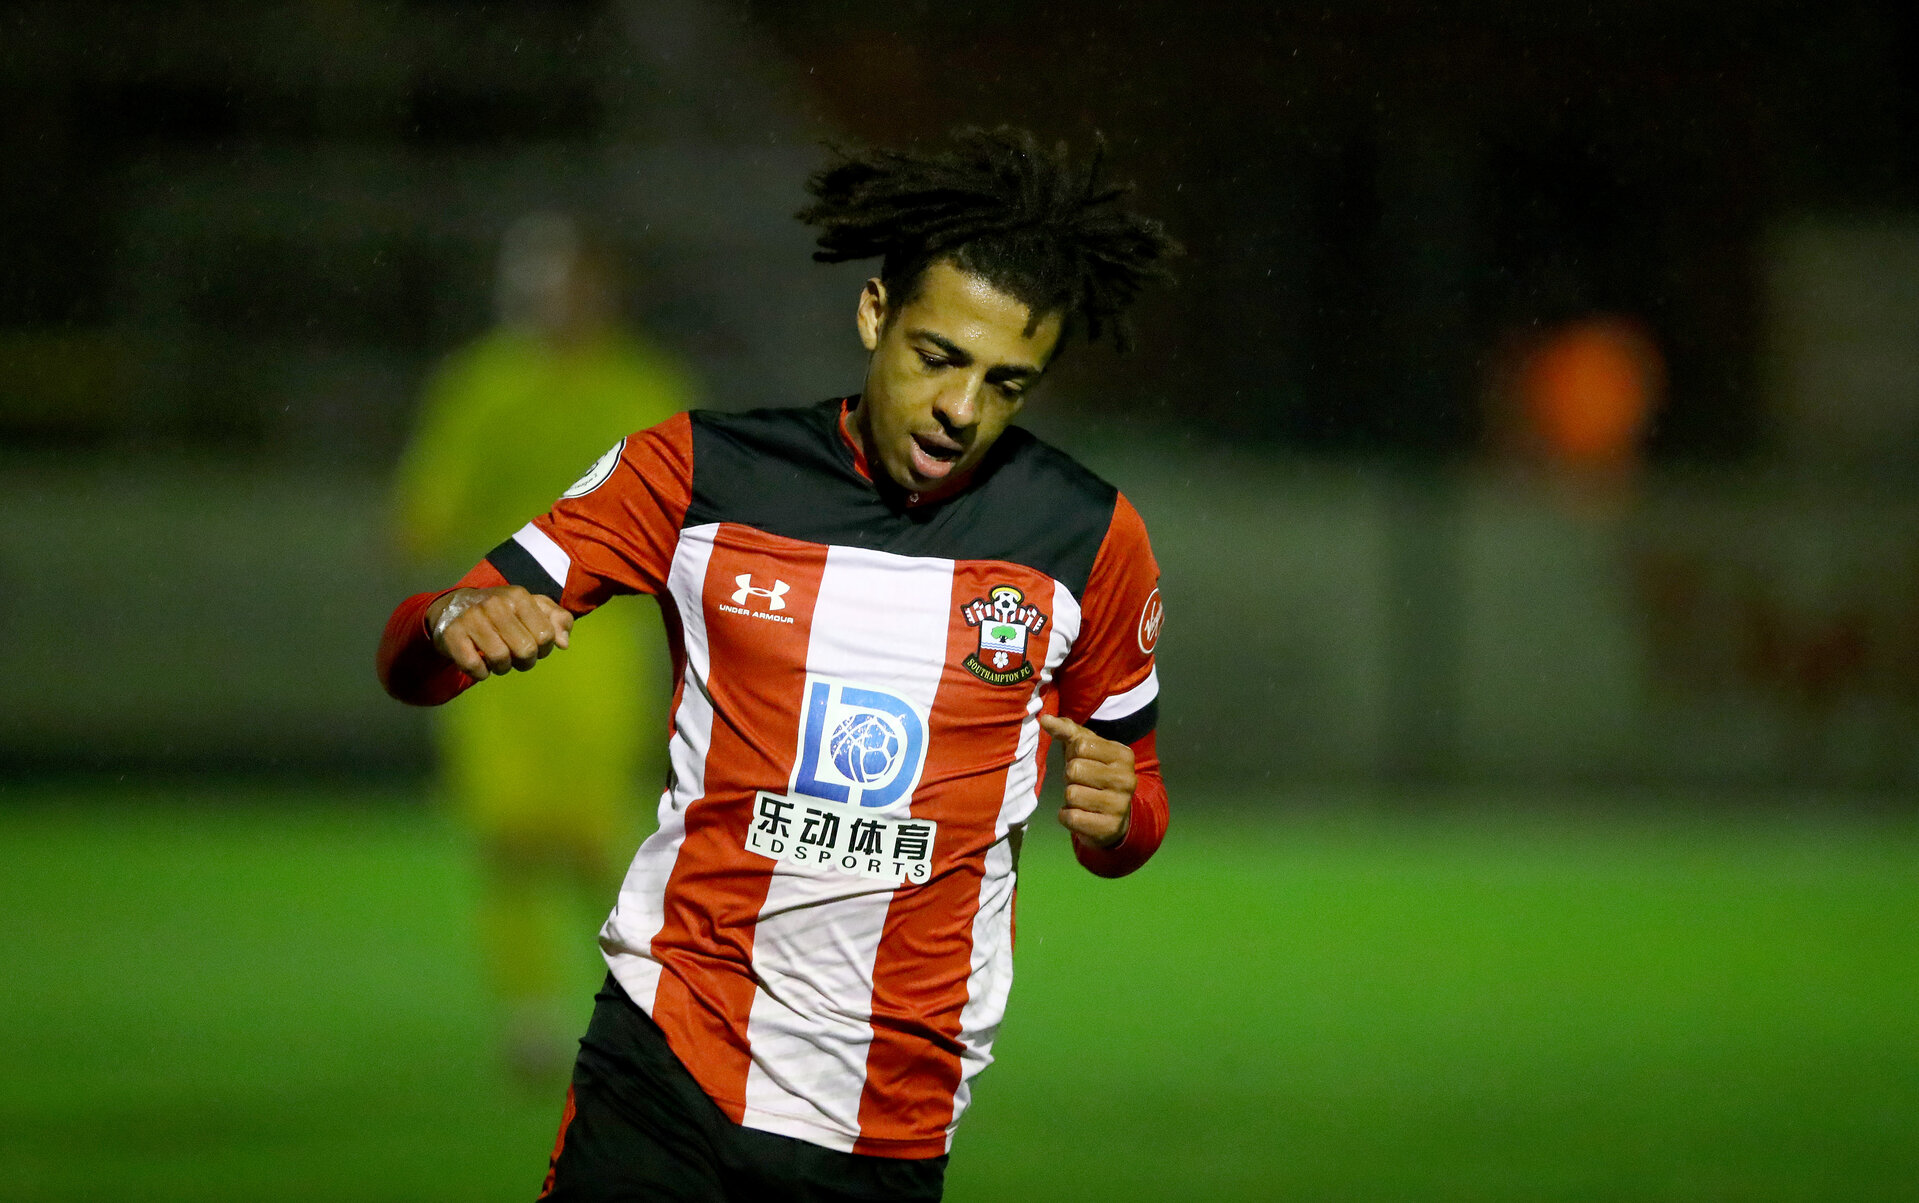 SOUTHAMPTON, ENGLAND - FEBRUARY 18: Caleb Watts of Southampton after scoring his teams second goal during the Hampshire Senior Cup match between Southampton FC and Havant and Waterlooville at the Snows Stadium, Totton, on February 18, 2020 in Southampton, England. (Photo by Matt Watson/Southampton FC via Getty Images)